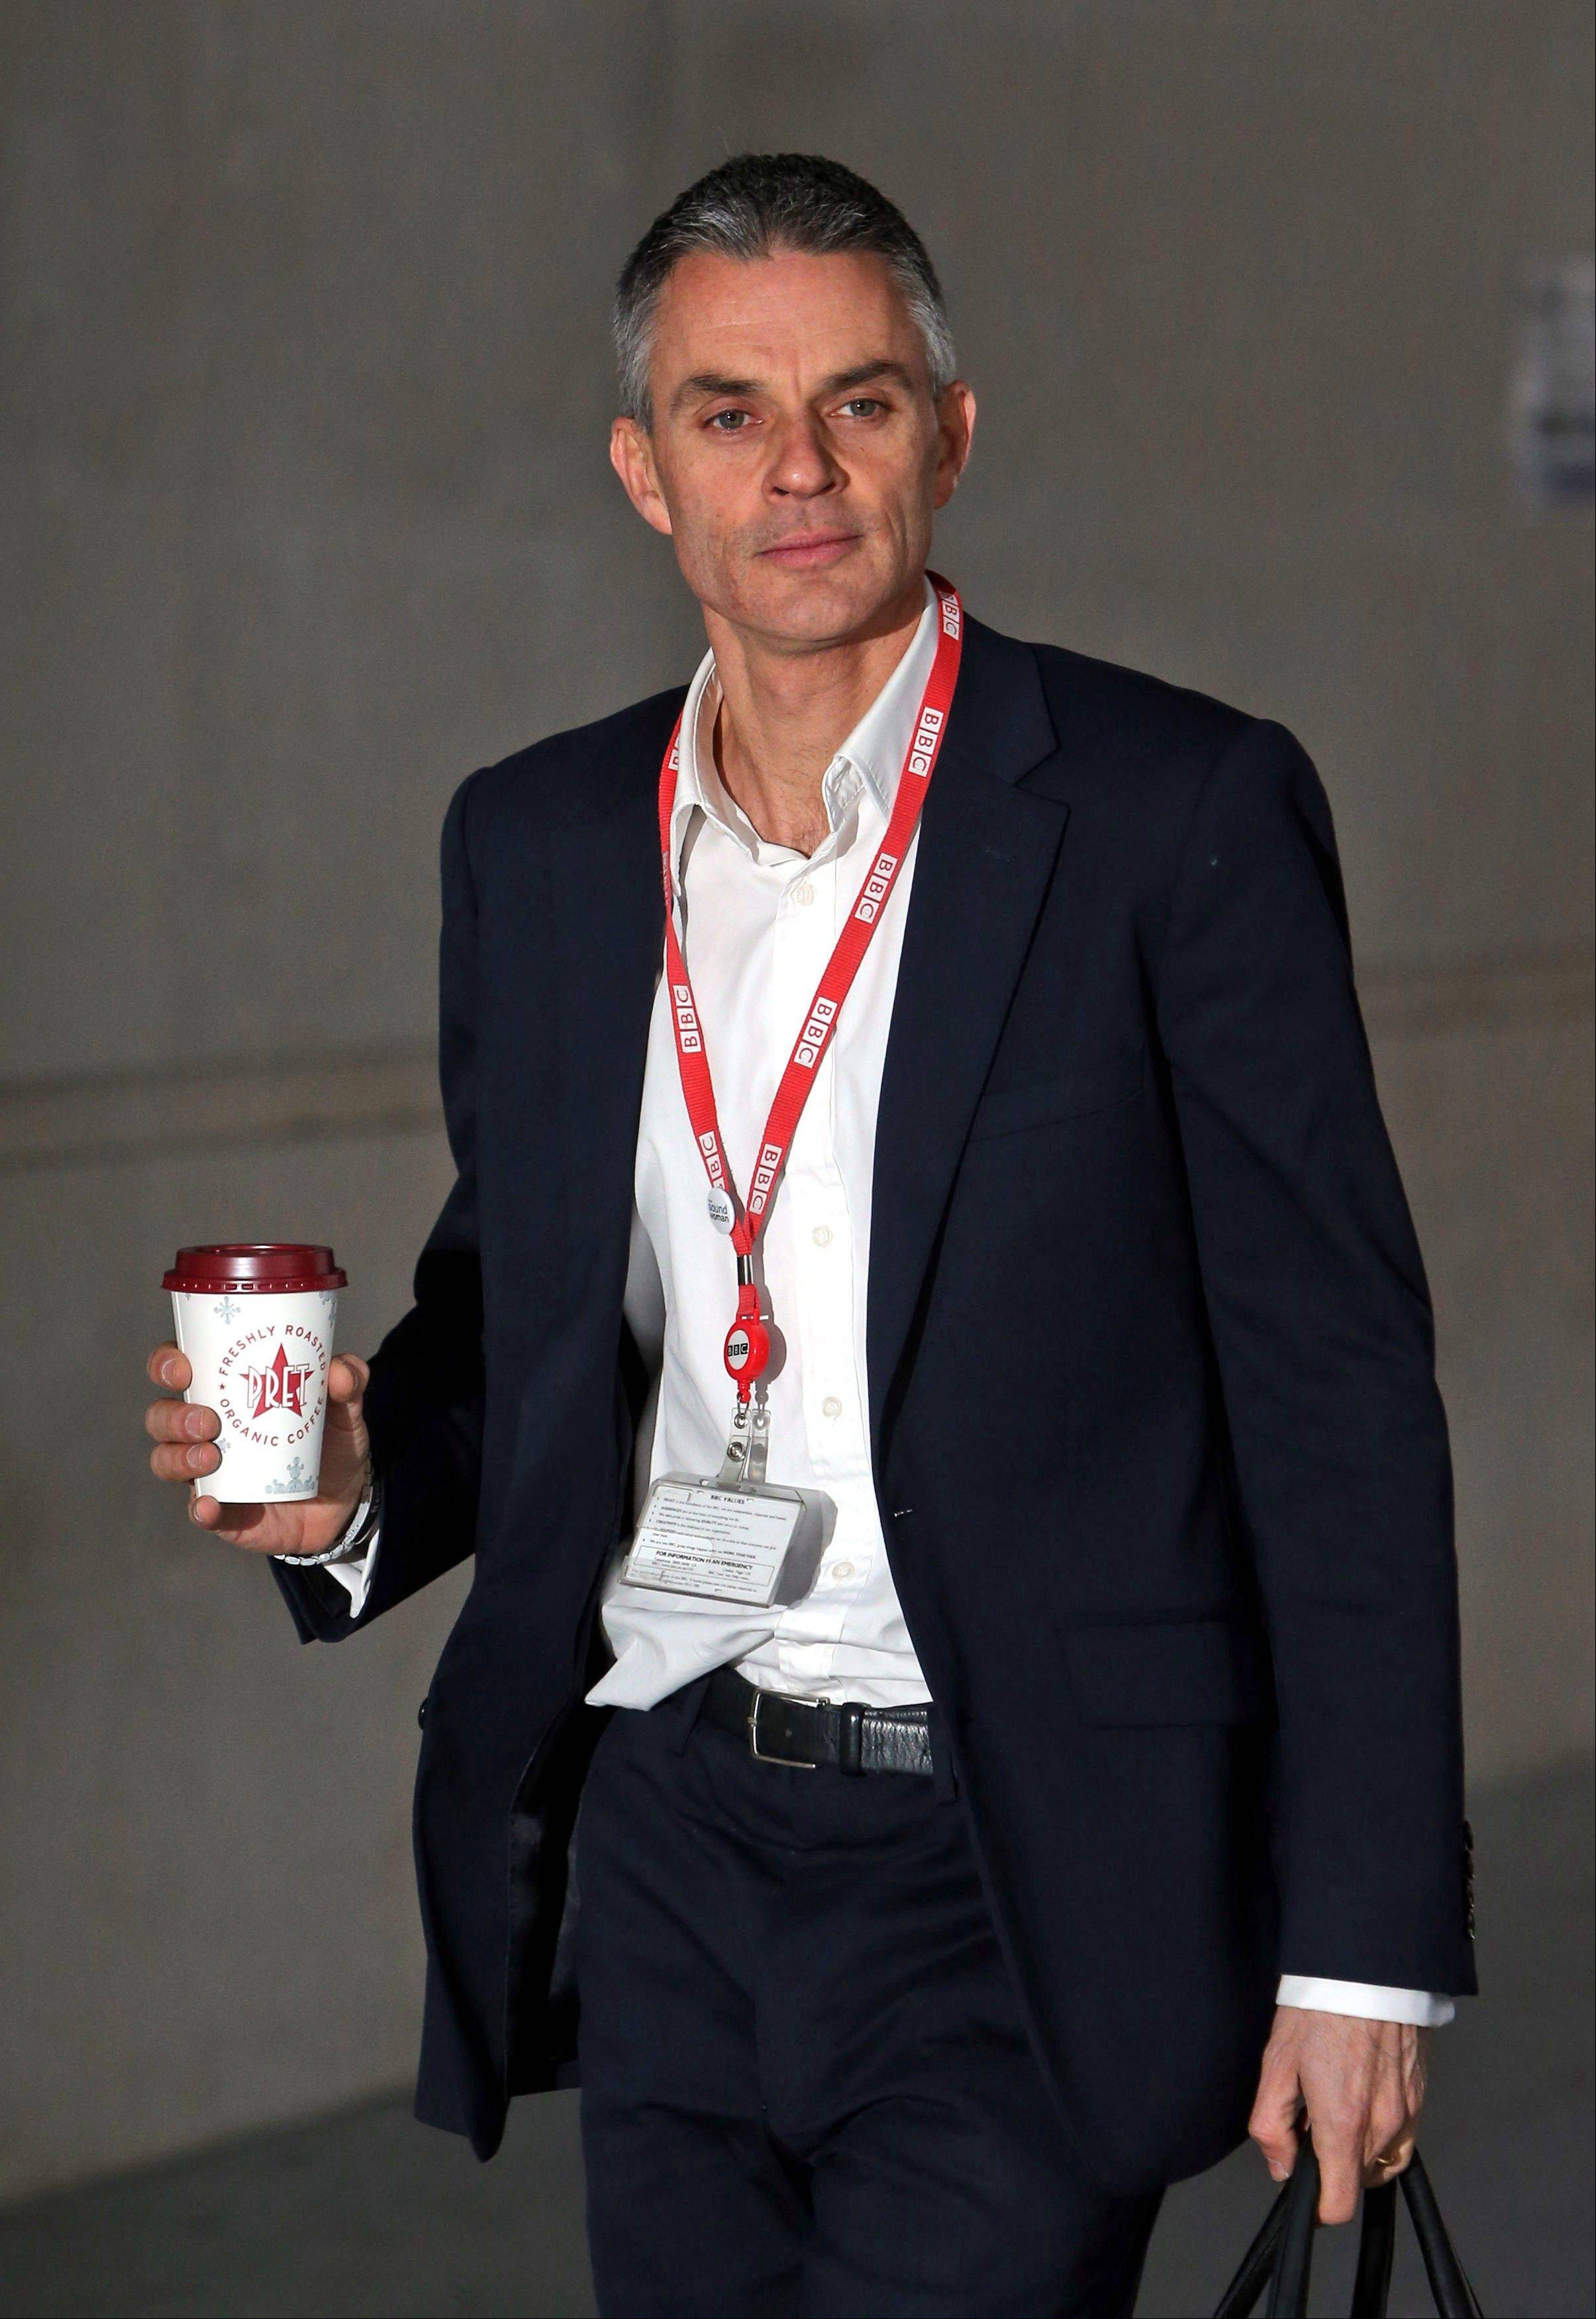 Acting director general of the BBC Tim Davie arrives at New Broadcasting house in central London Monday. The BBC, one of the world's largest and most respected broadcasters, is facing calls for a radical restructuring after botched coverage of child sex abuse scandals and the subsequent resignation of its director general.